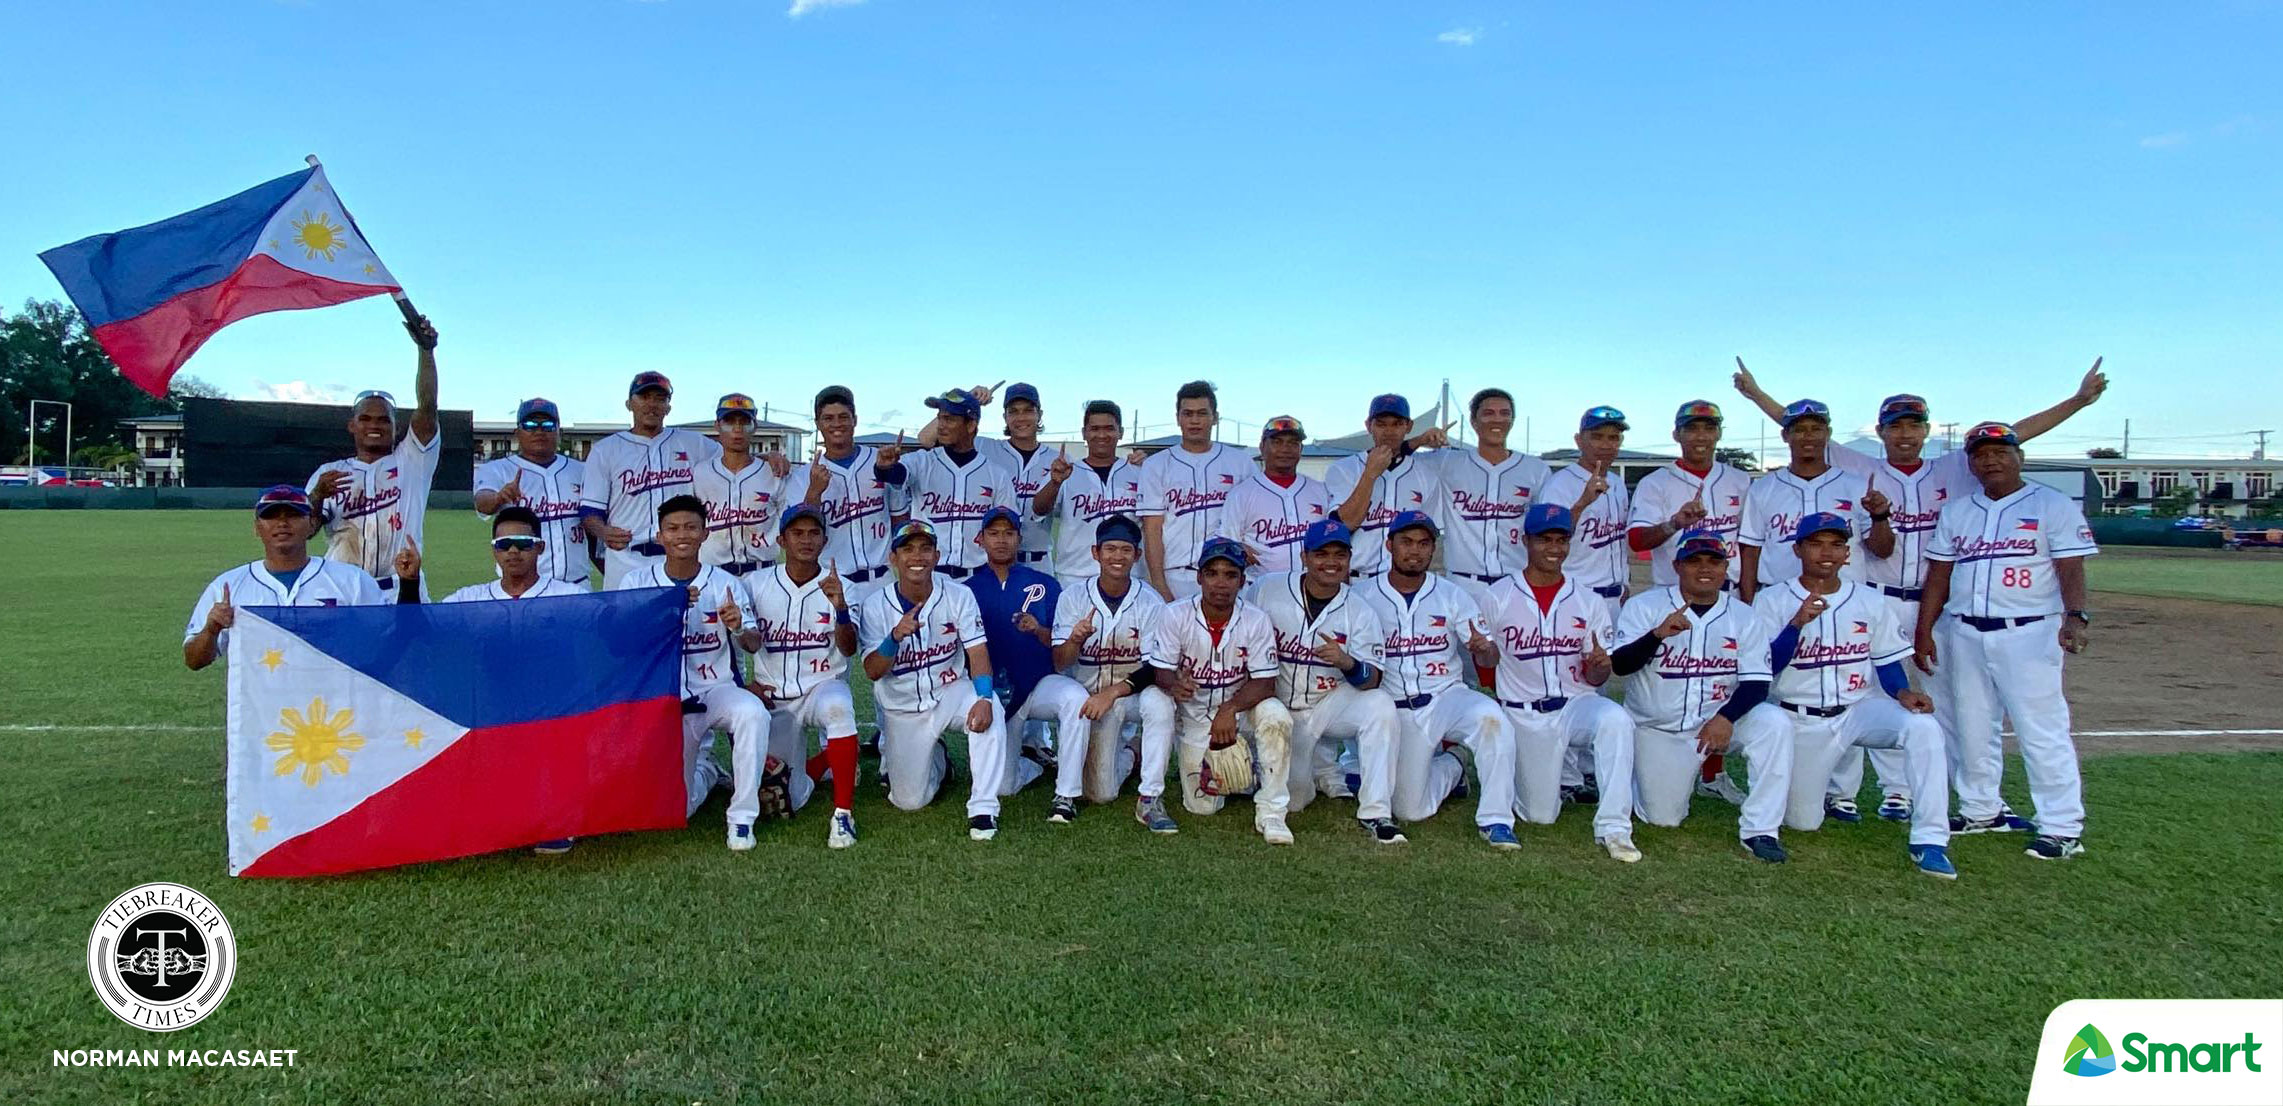 2019-sea-games-baseball-philippines-def-thailand Ofring Dela Cruz hopes for Blu Boys program revamp after SEAG silver finish 2019 SEA Games News Softball  - philippine sports news